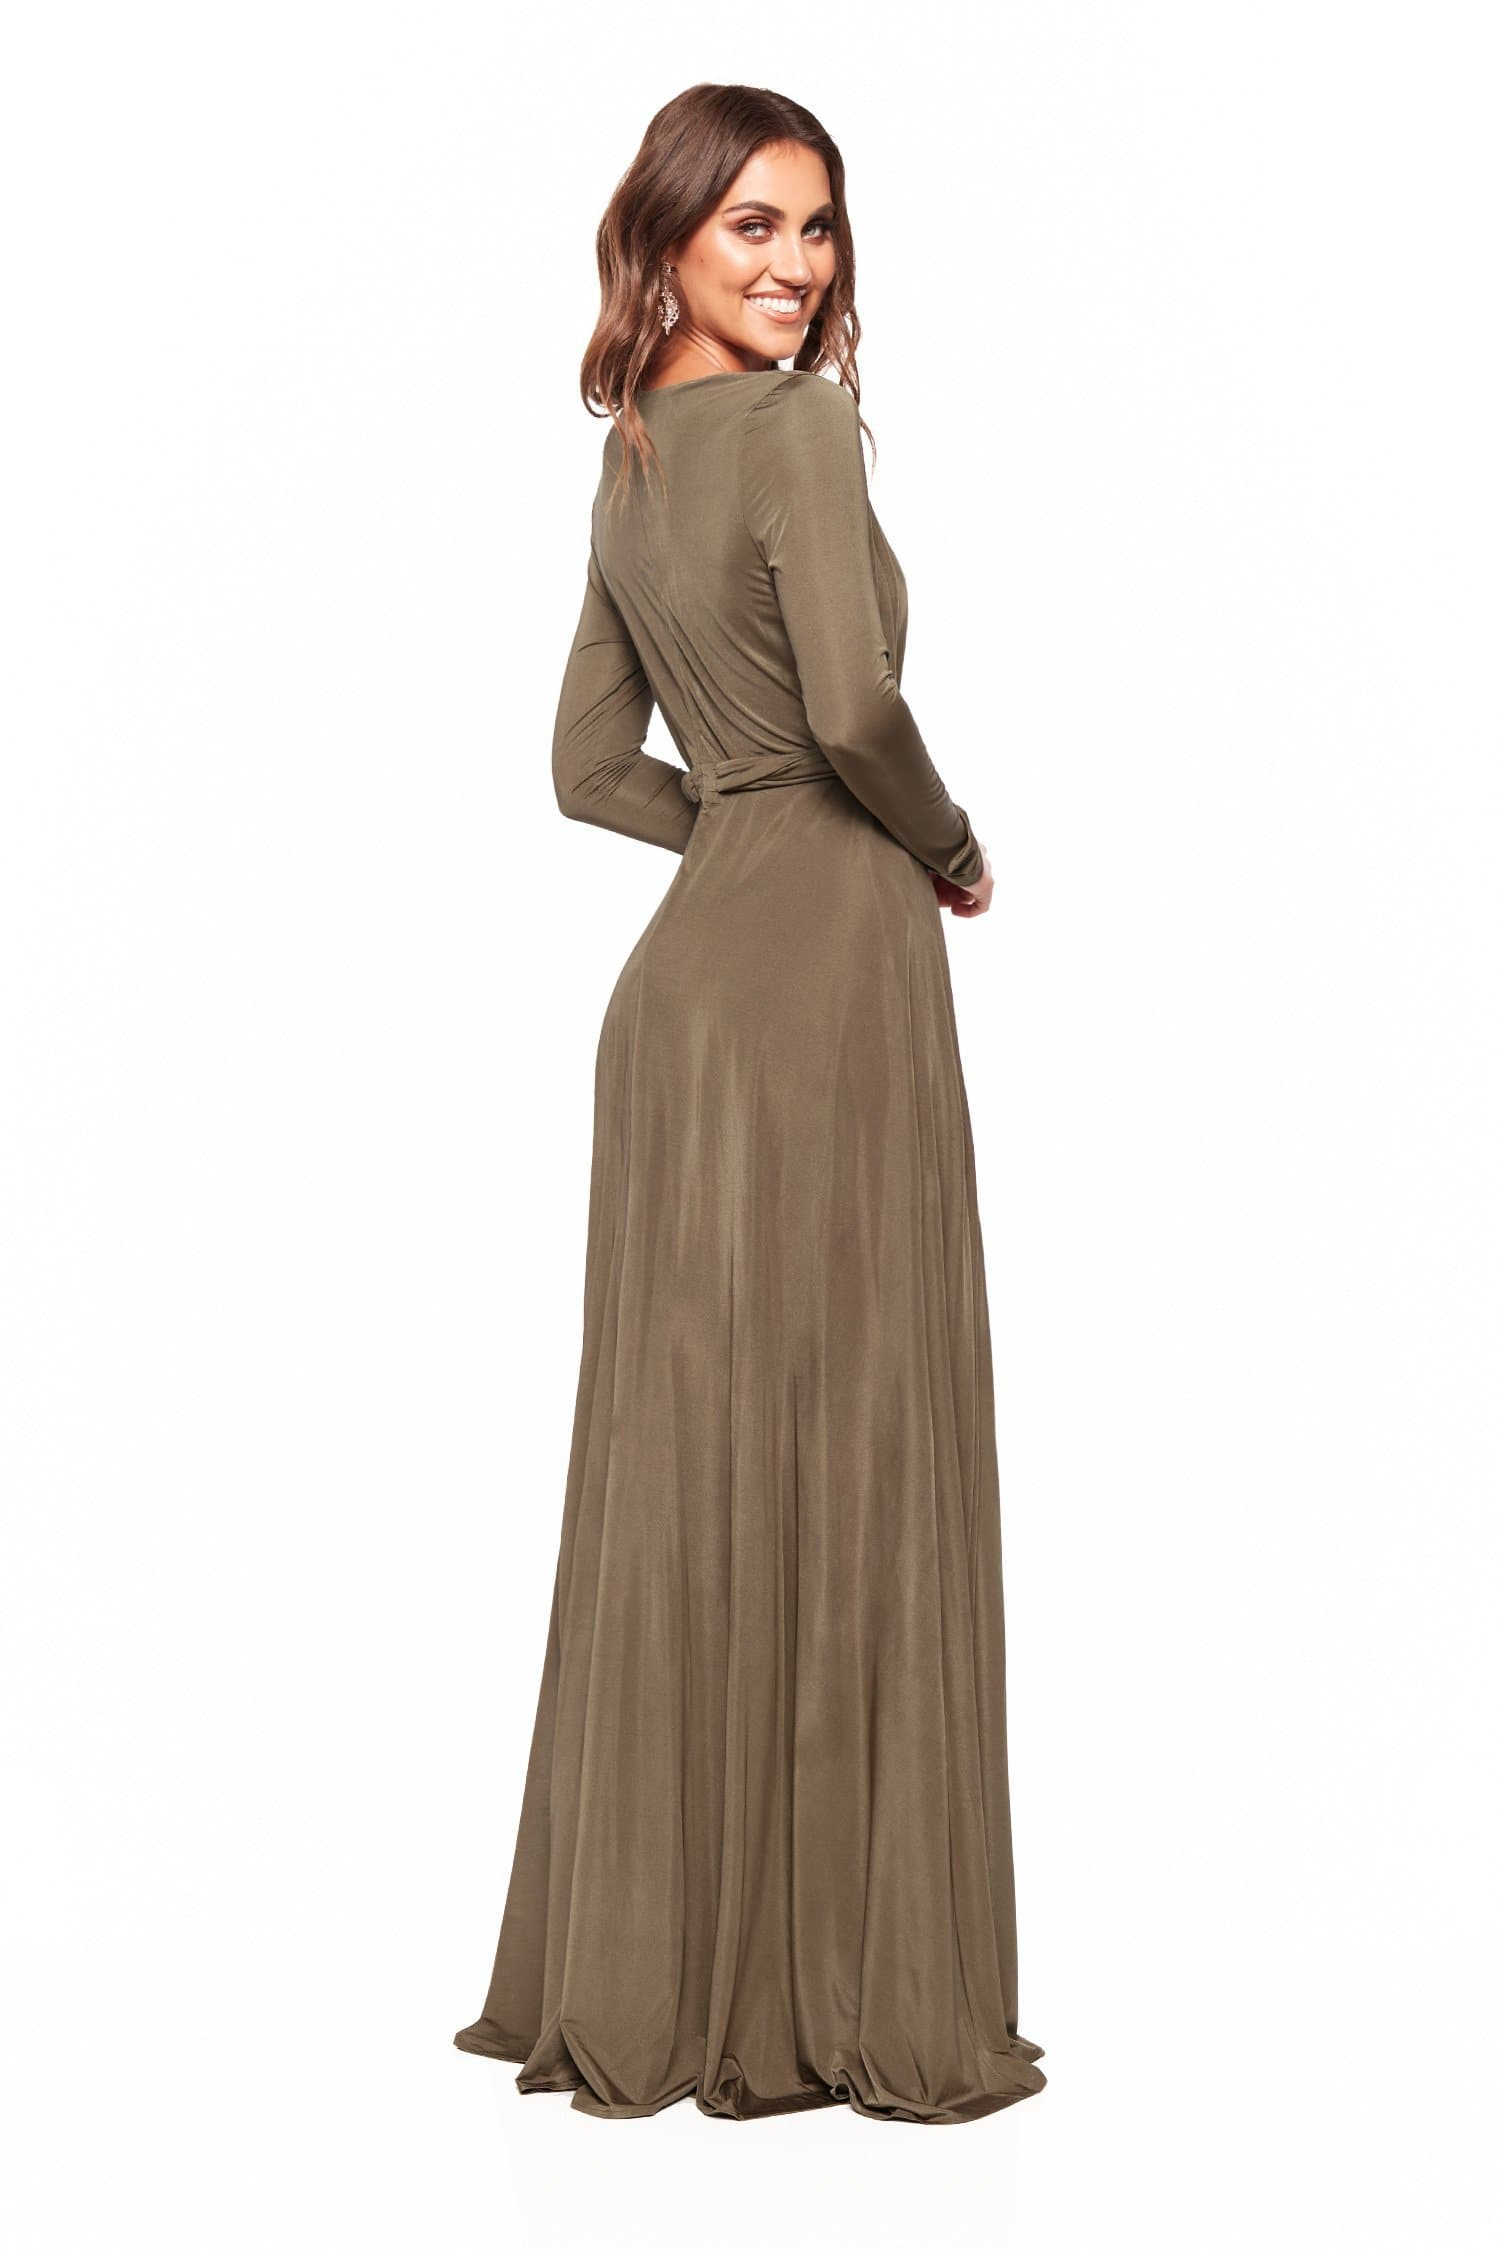 594629b72b55 ... Sahara - Olive Long Sleeved Gown with Thigh-High Slits & Plunge Neck ...